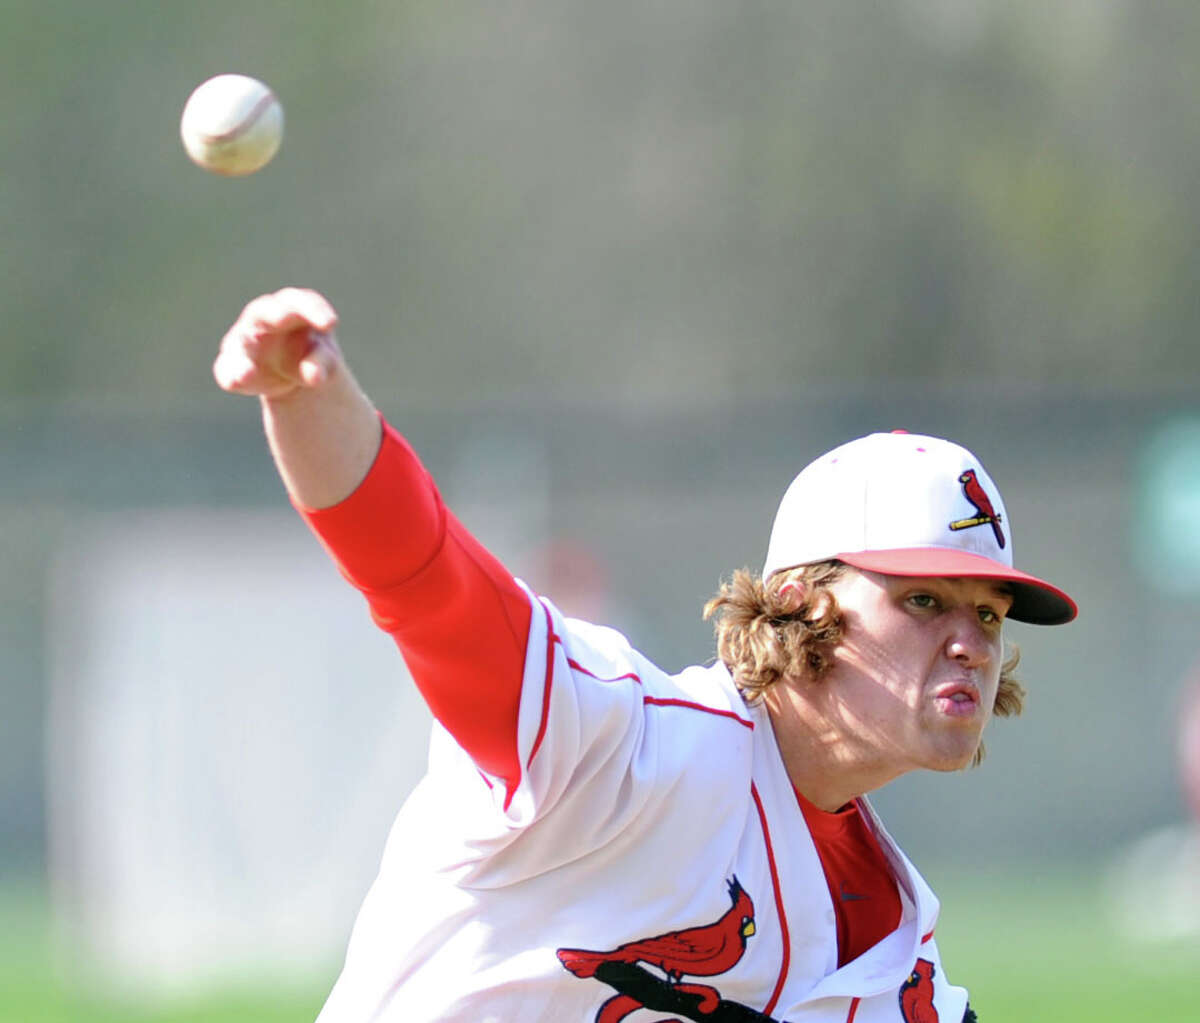 Greenwich pitcher Kyle Dunster throws during the high school baseball game between Greenwich High School and St. Joseph High School at Greenwich, Friday, May 2, 2014. Greenwich won 5-4 on a game winning double by Kyle Dunster in the bottom of the 7th inning.